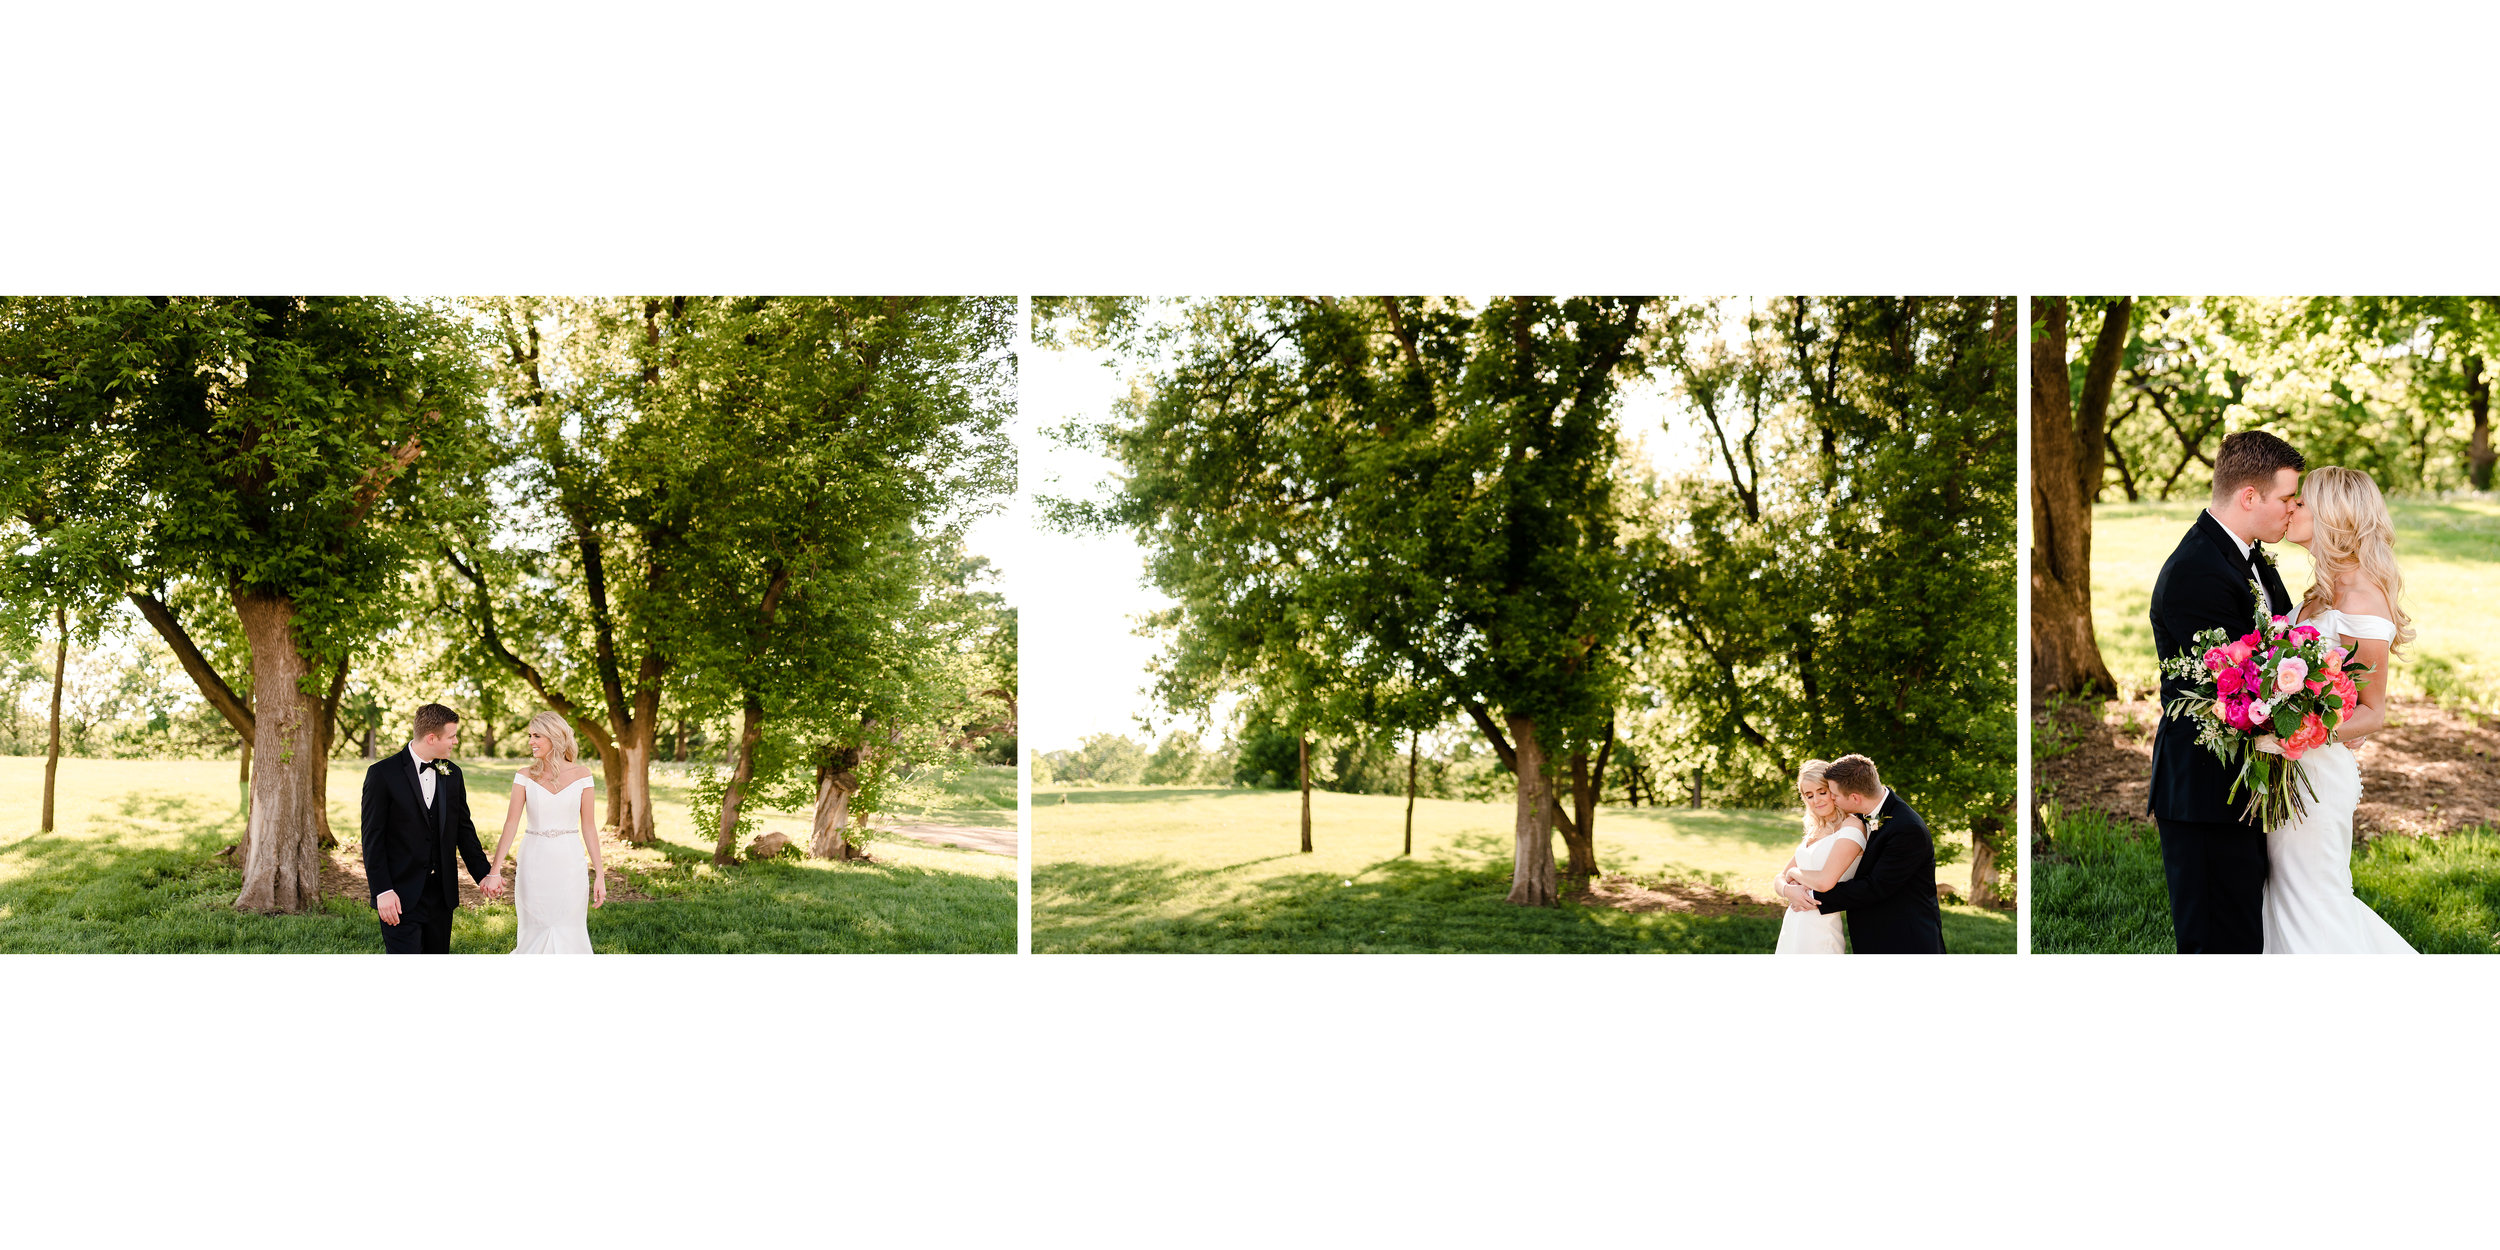 Amanda + Justin - Wedding Album_25.jpg